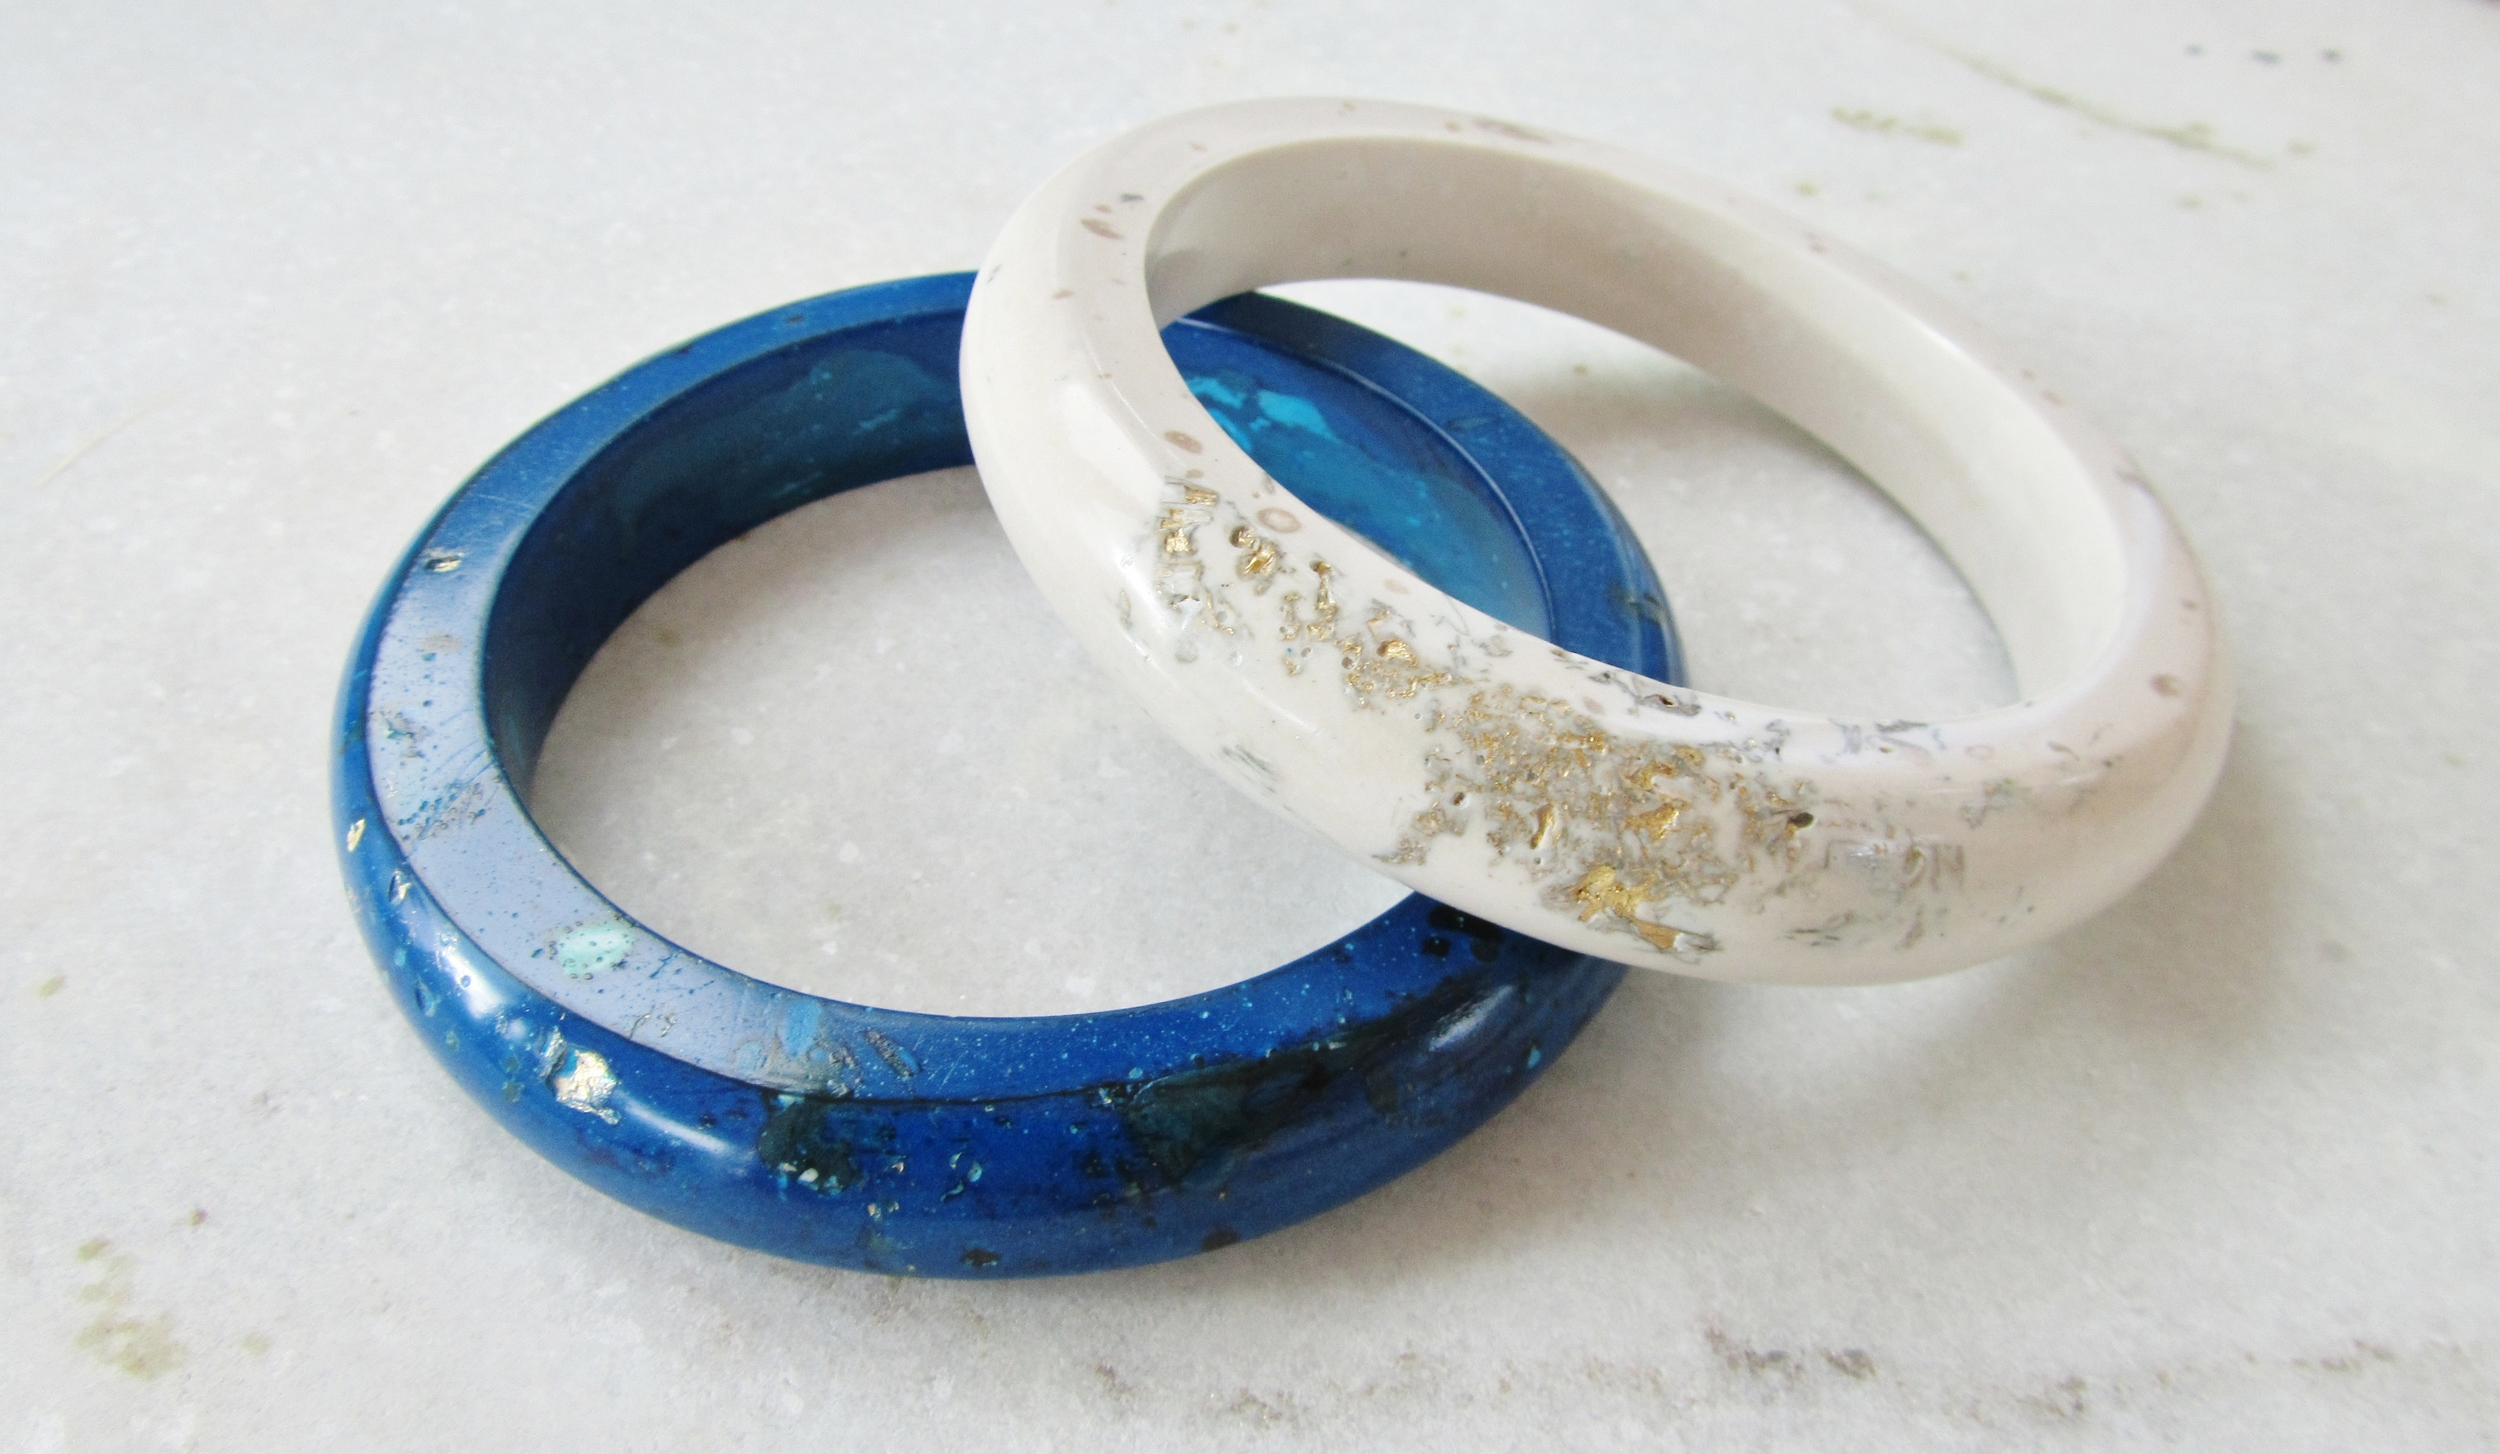 blue and white hewn bangles jade mellor.JPG